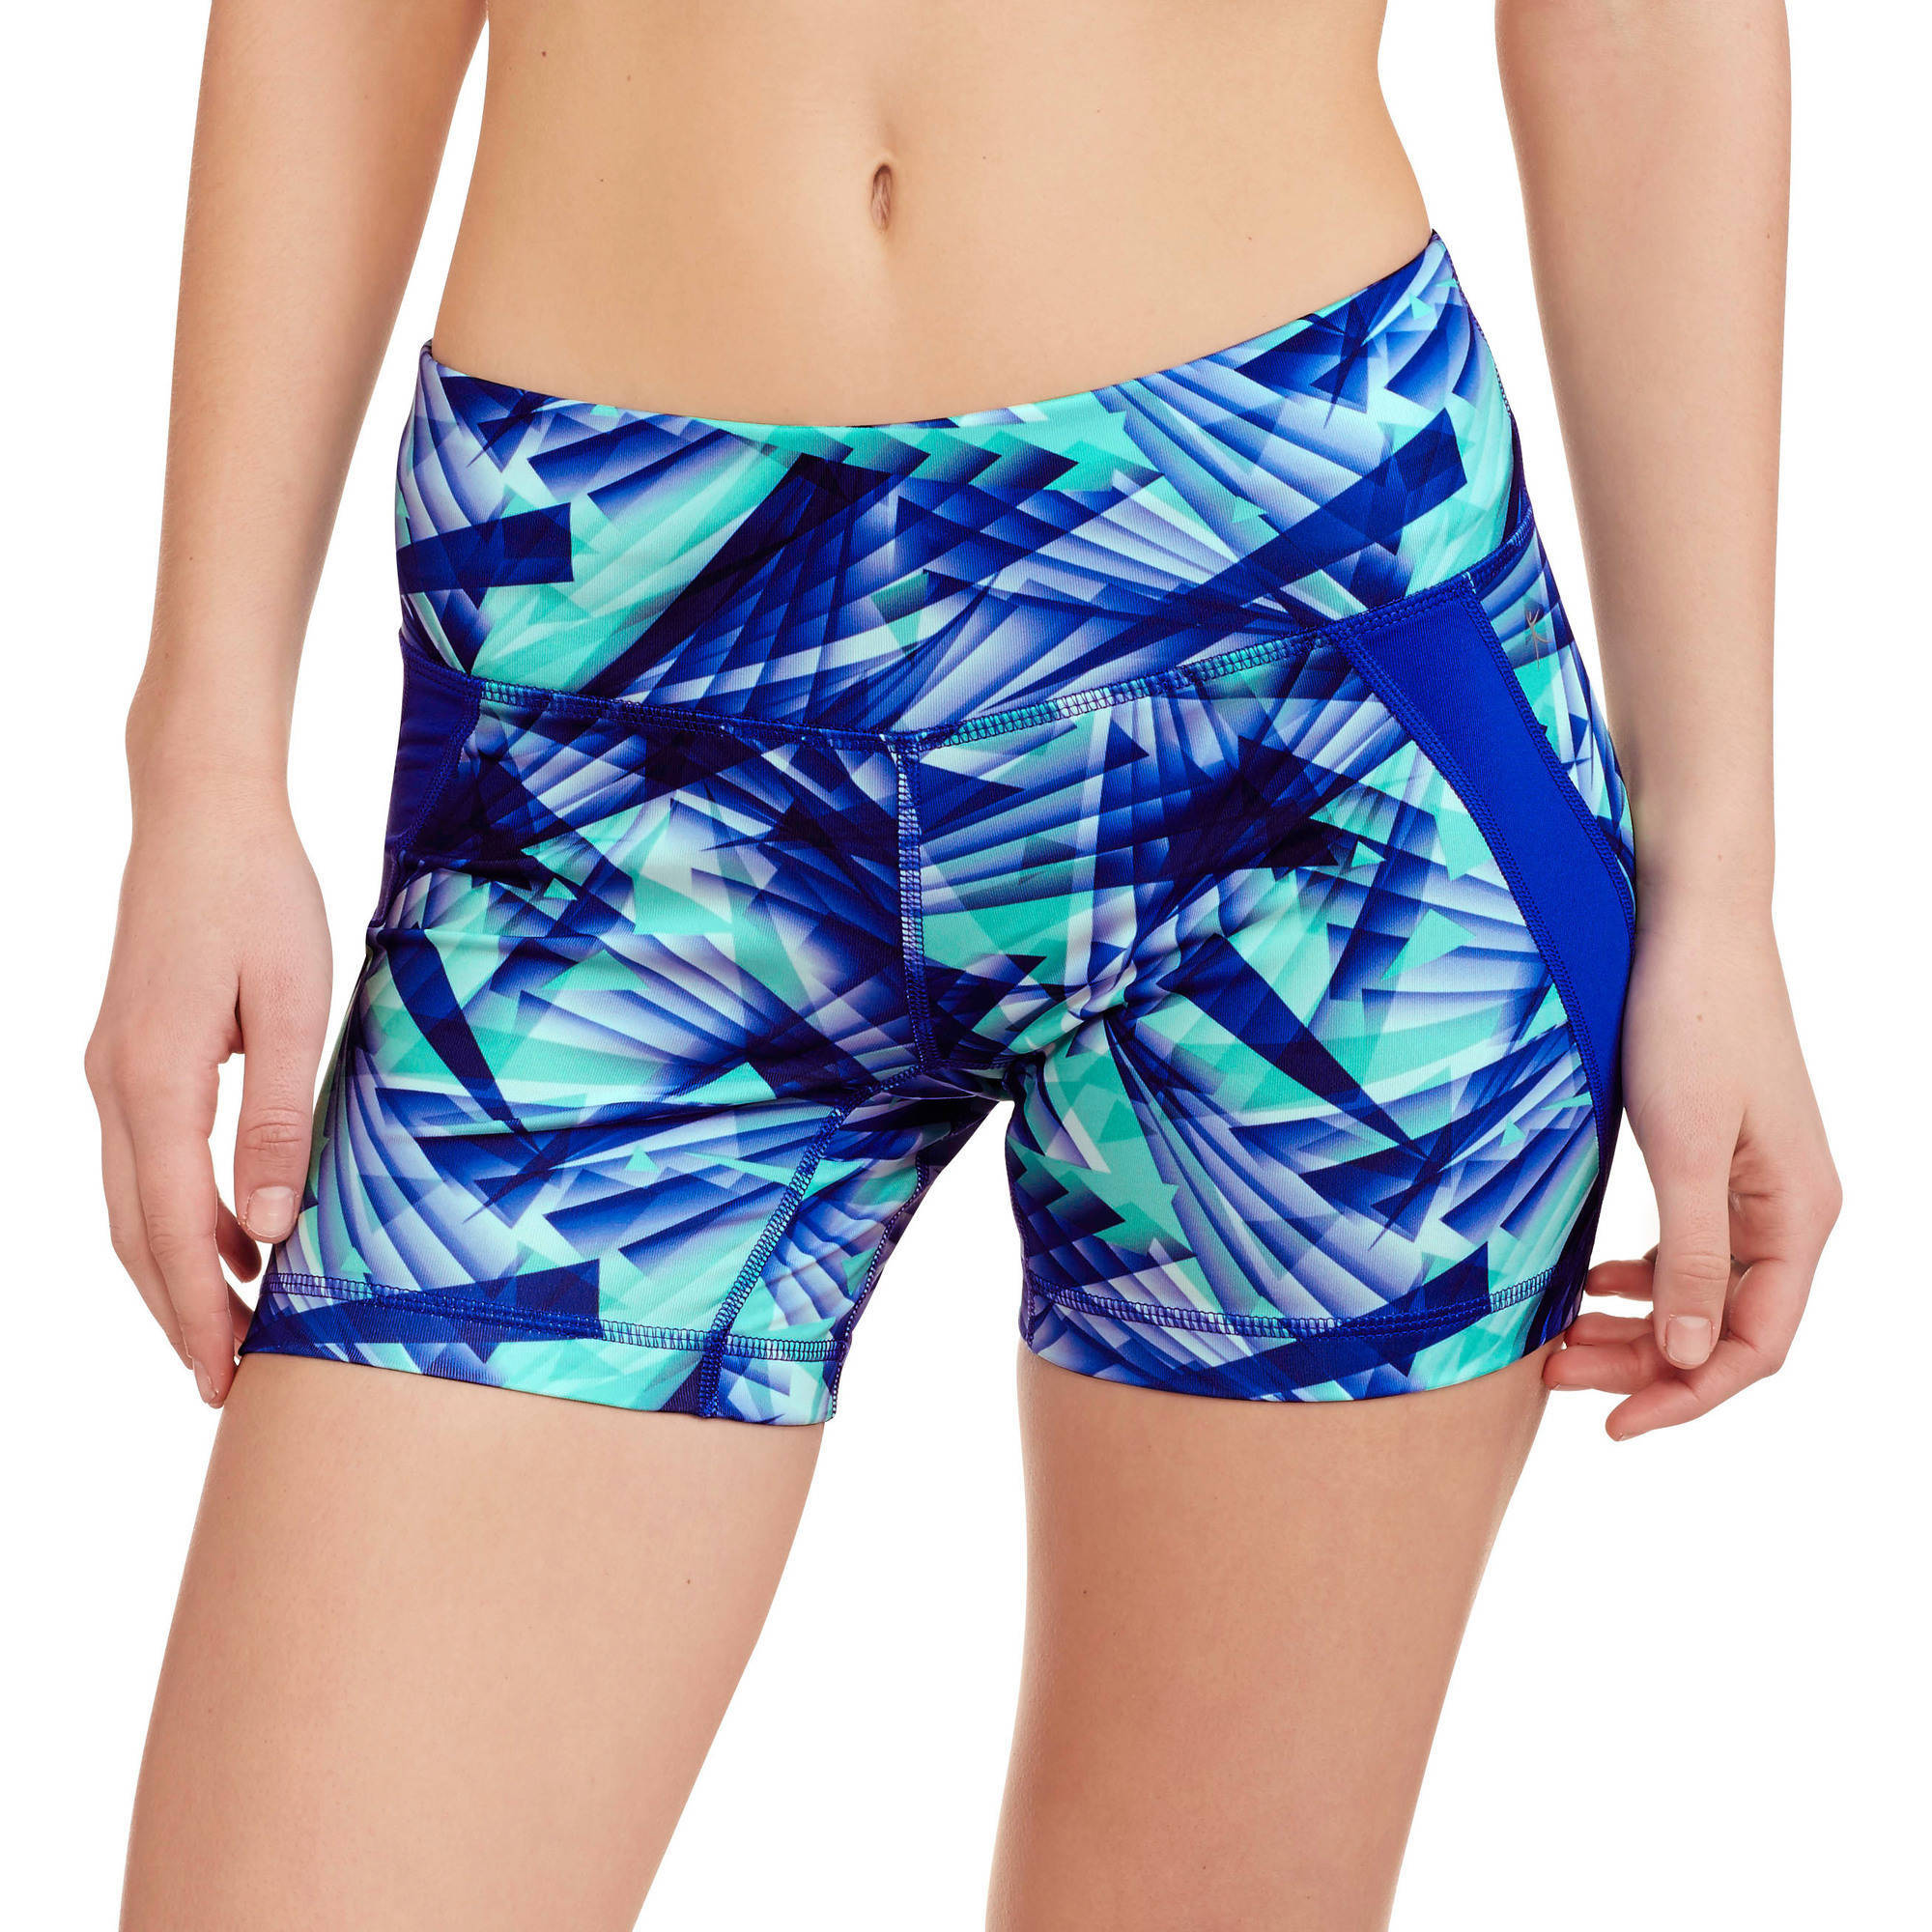 Danskin Now Women's Printed Performance Bike Short